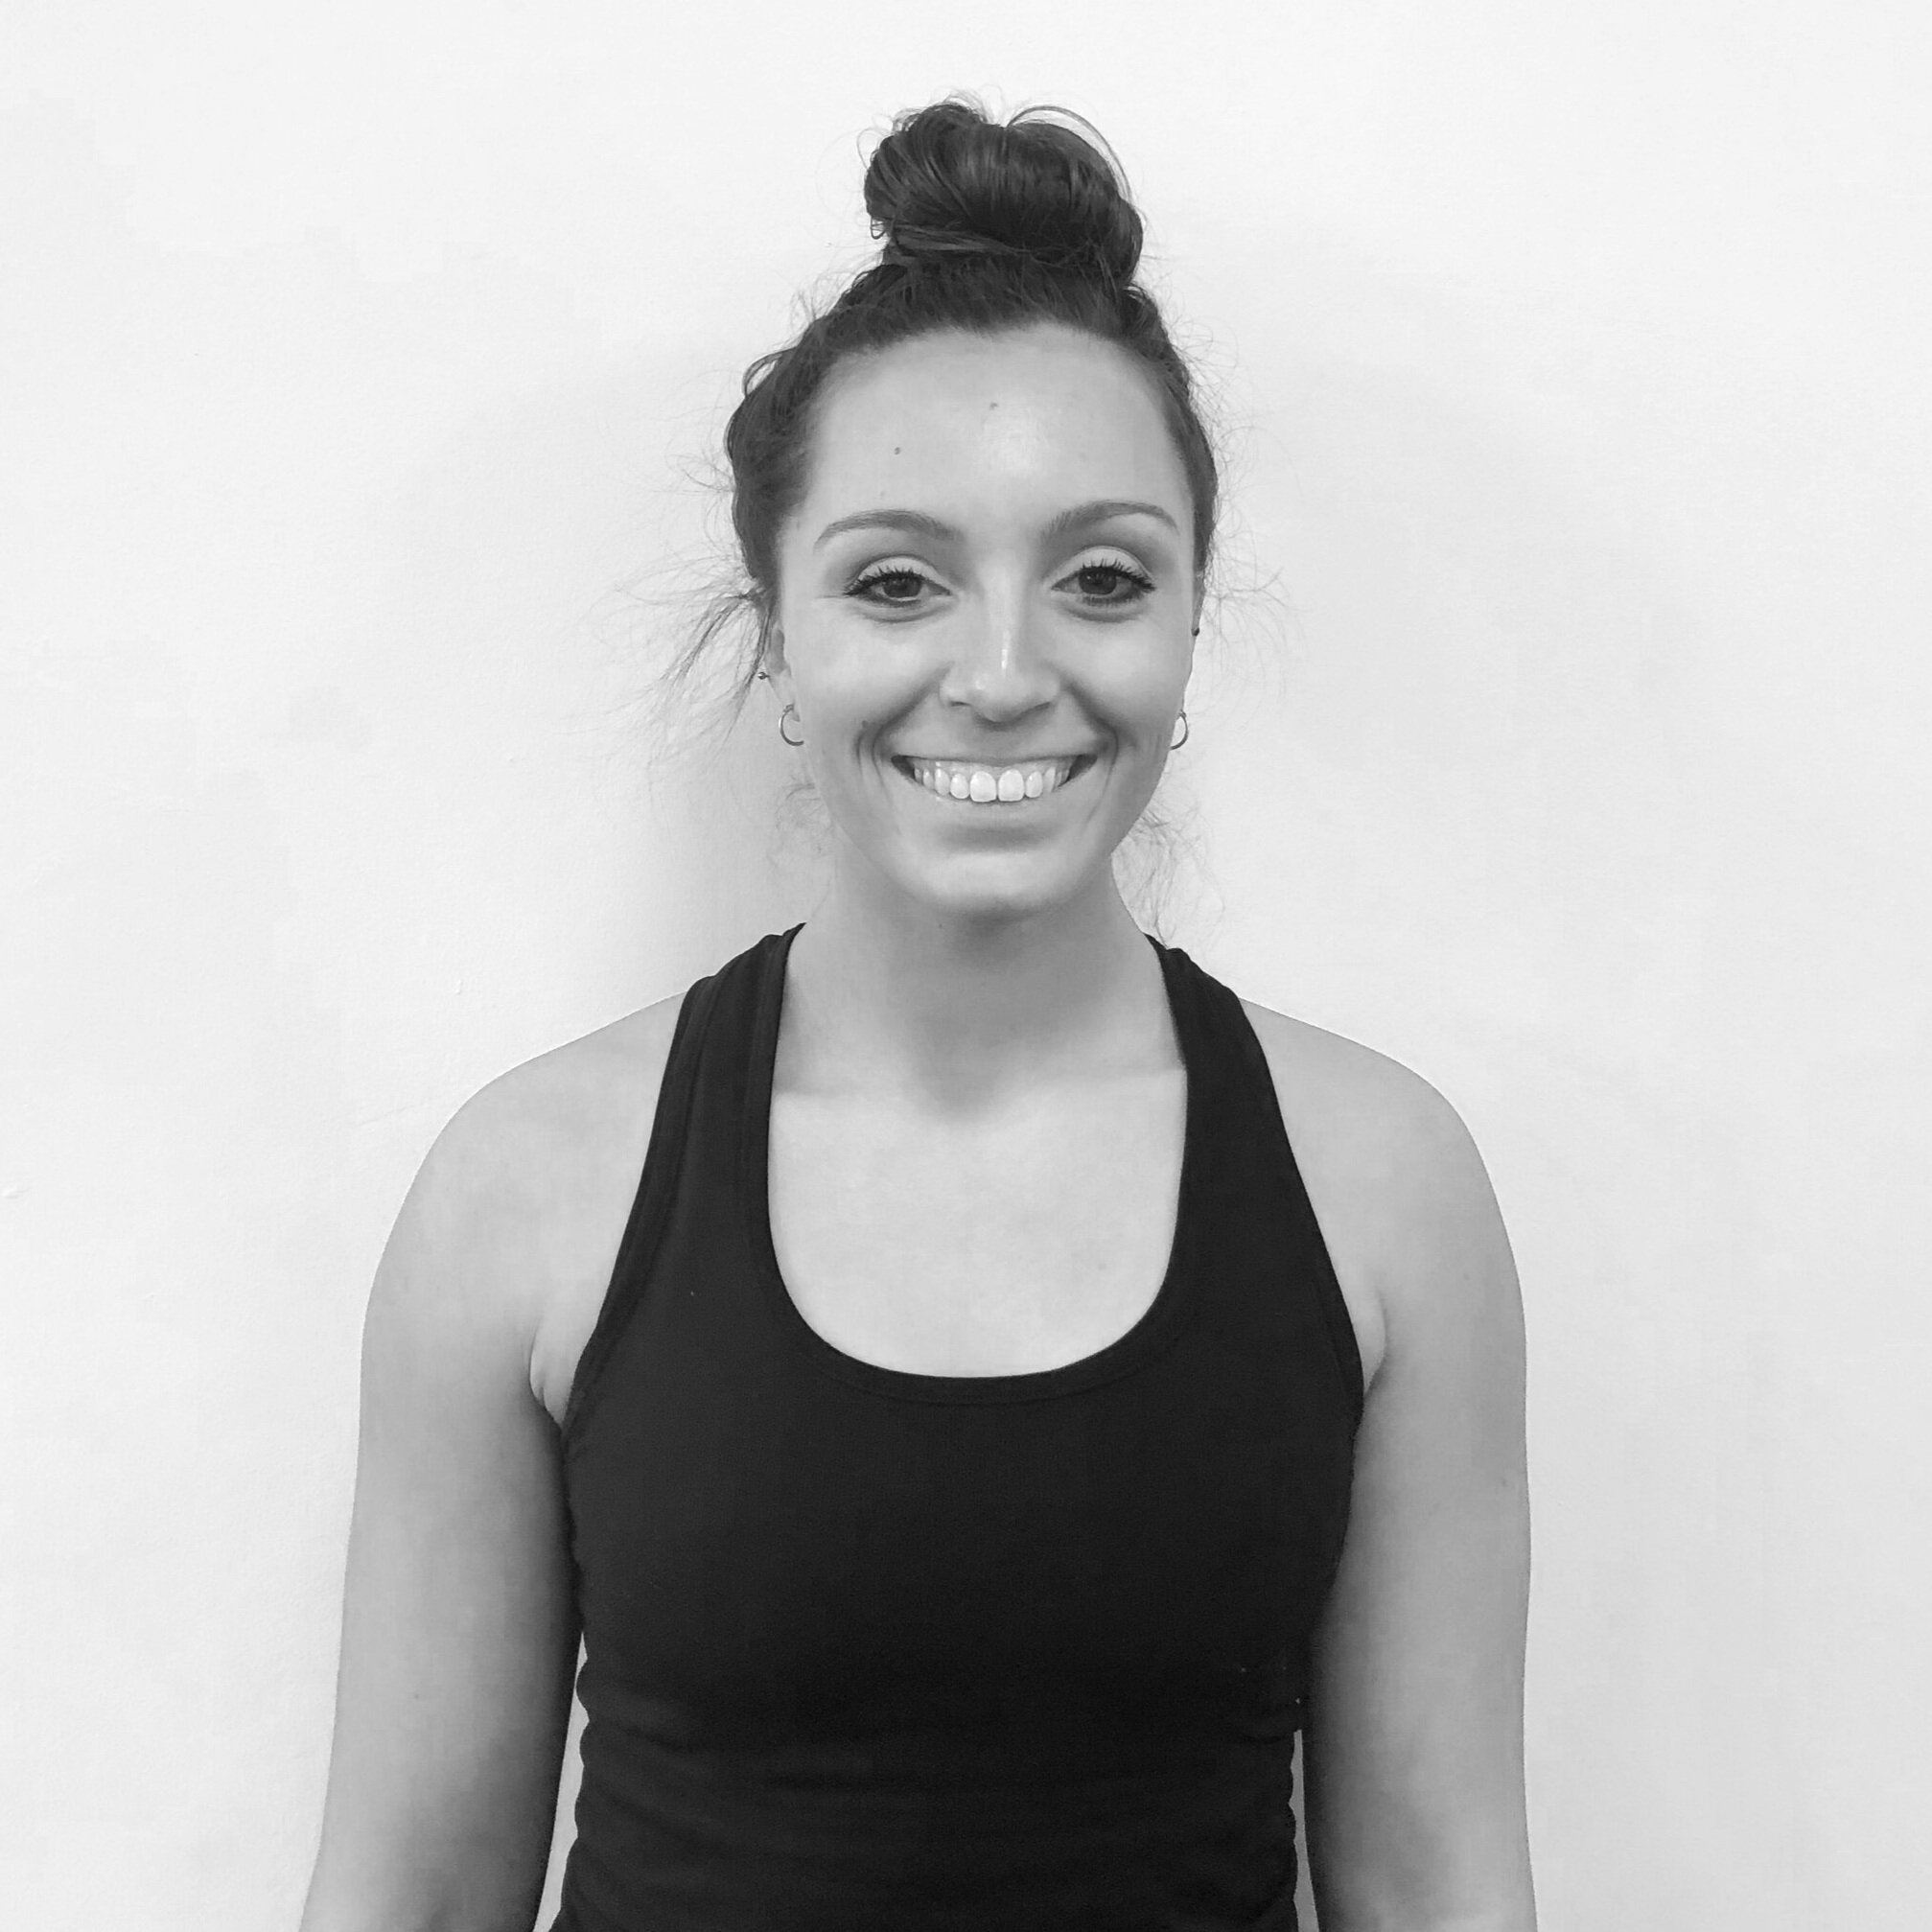 Miss Amanda B. - Amanda grew up dancing at Melrose Dance Academy and was a member on the Performance Team until she went to college in 2014 where she continued her love of dance. She graduated this year from Rollins College and is now excited to return to Melrose Dance Academy!